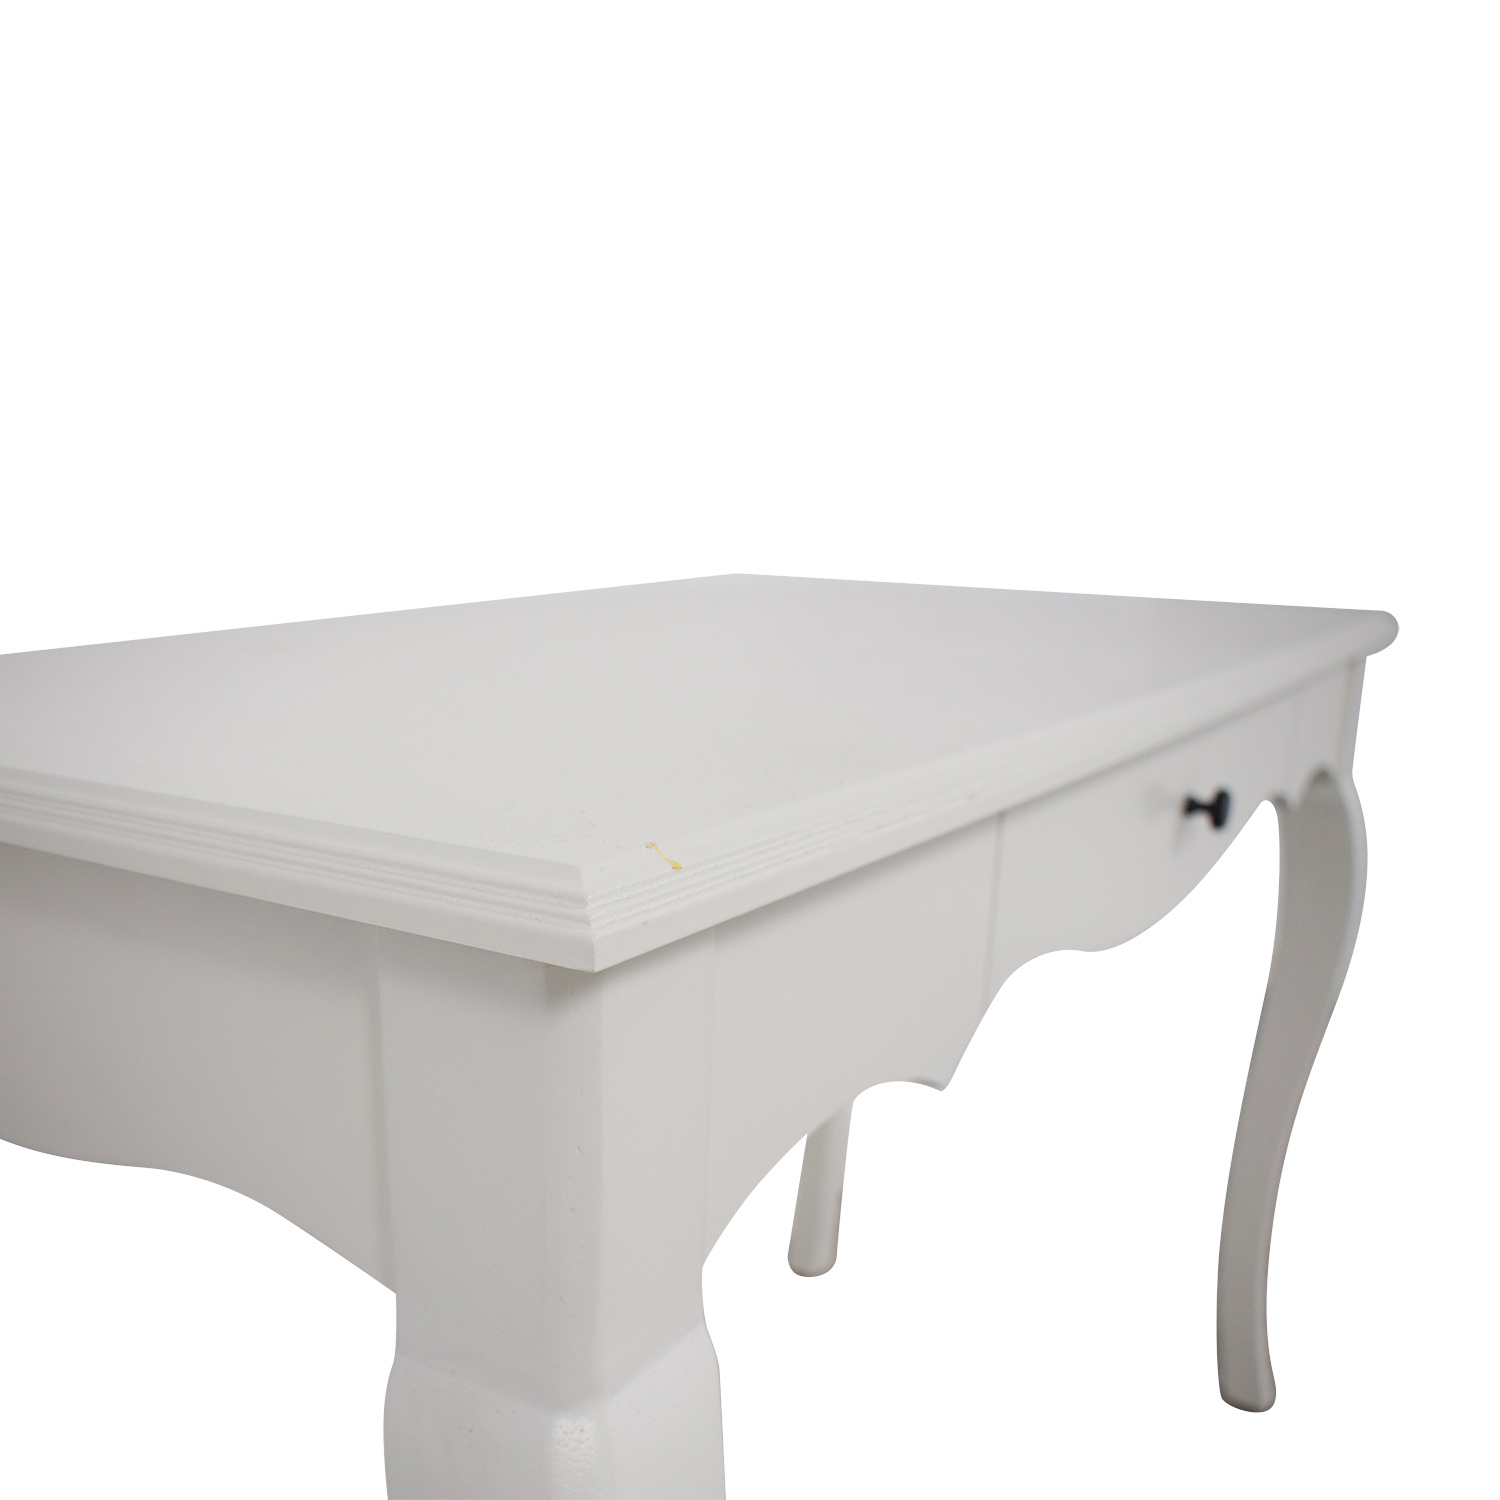 70 Off Pier 1 Pier 1 Toscana Snow White Desk Tables